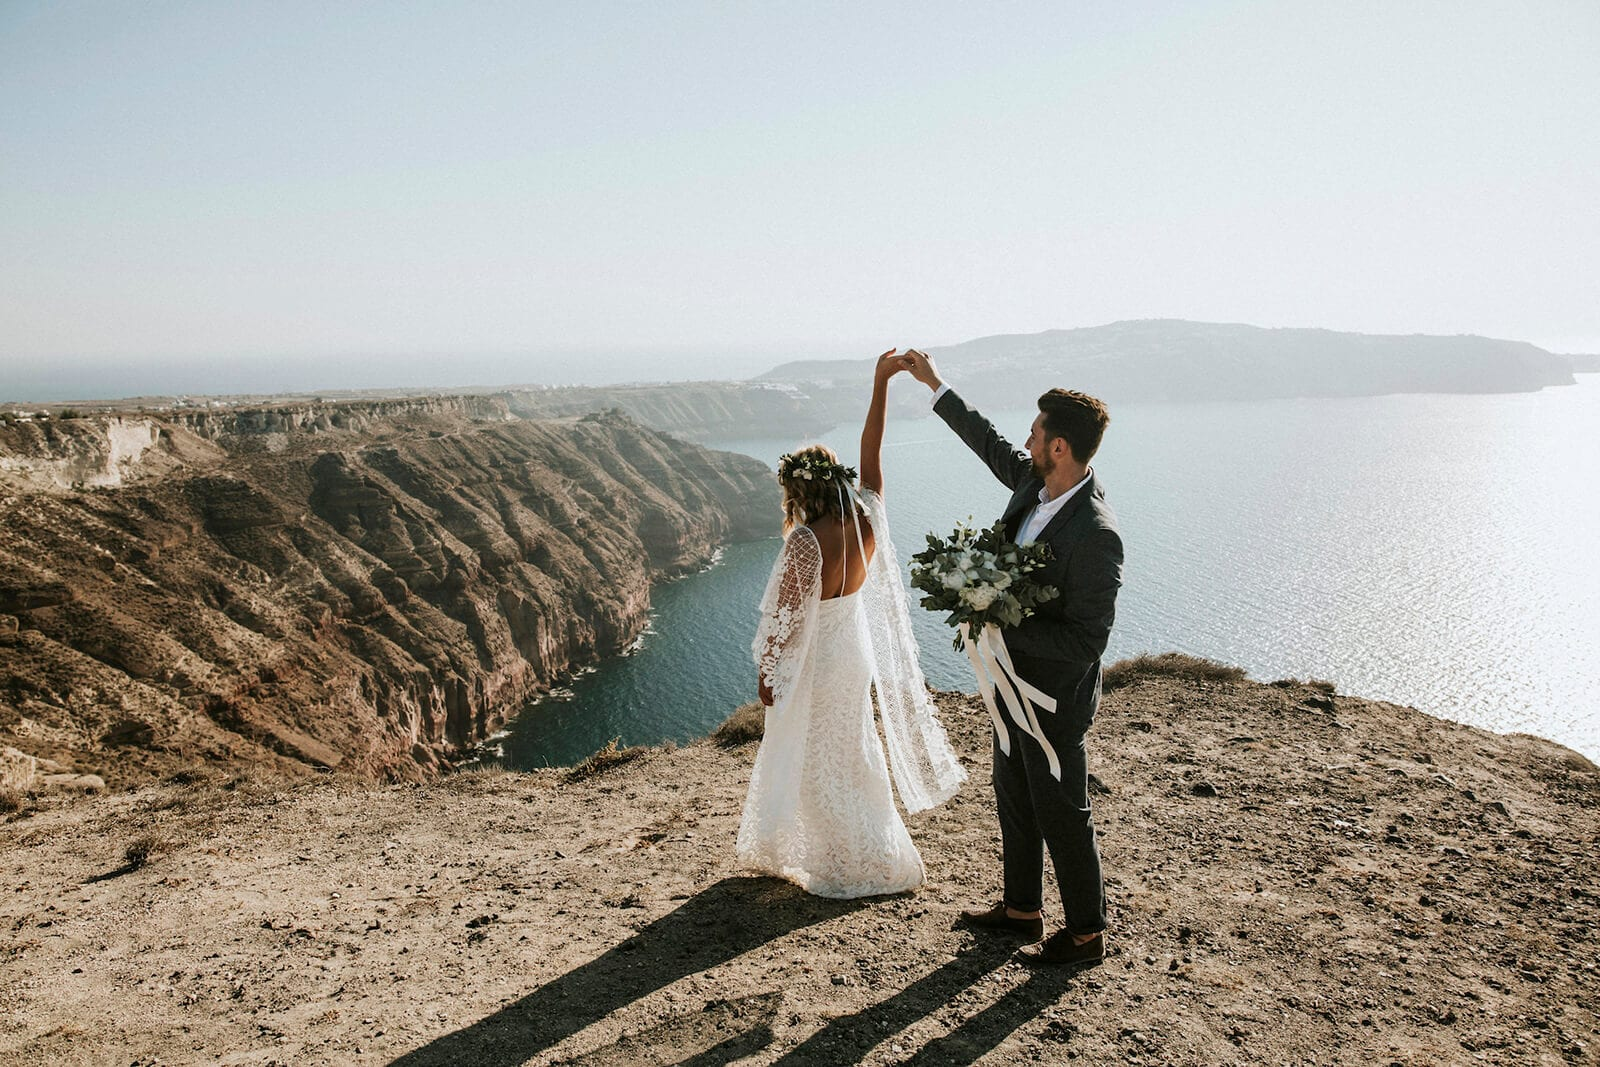 Bride wearing Grace Loves Lace Verdelle 2.0 Gown dancing with groom on seaside cliff